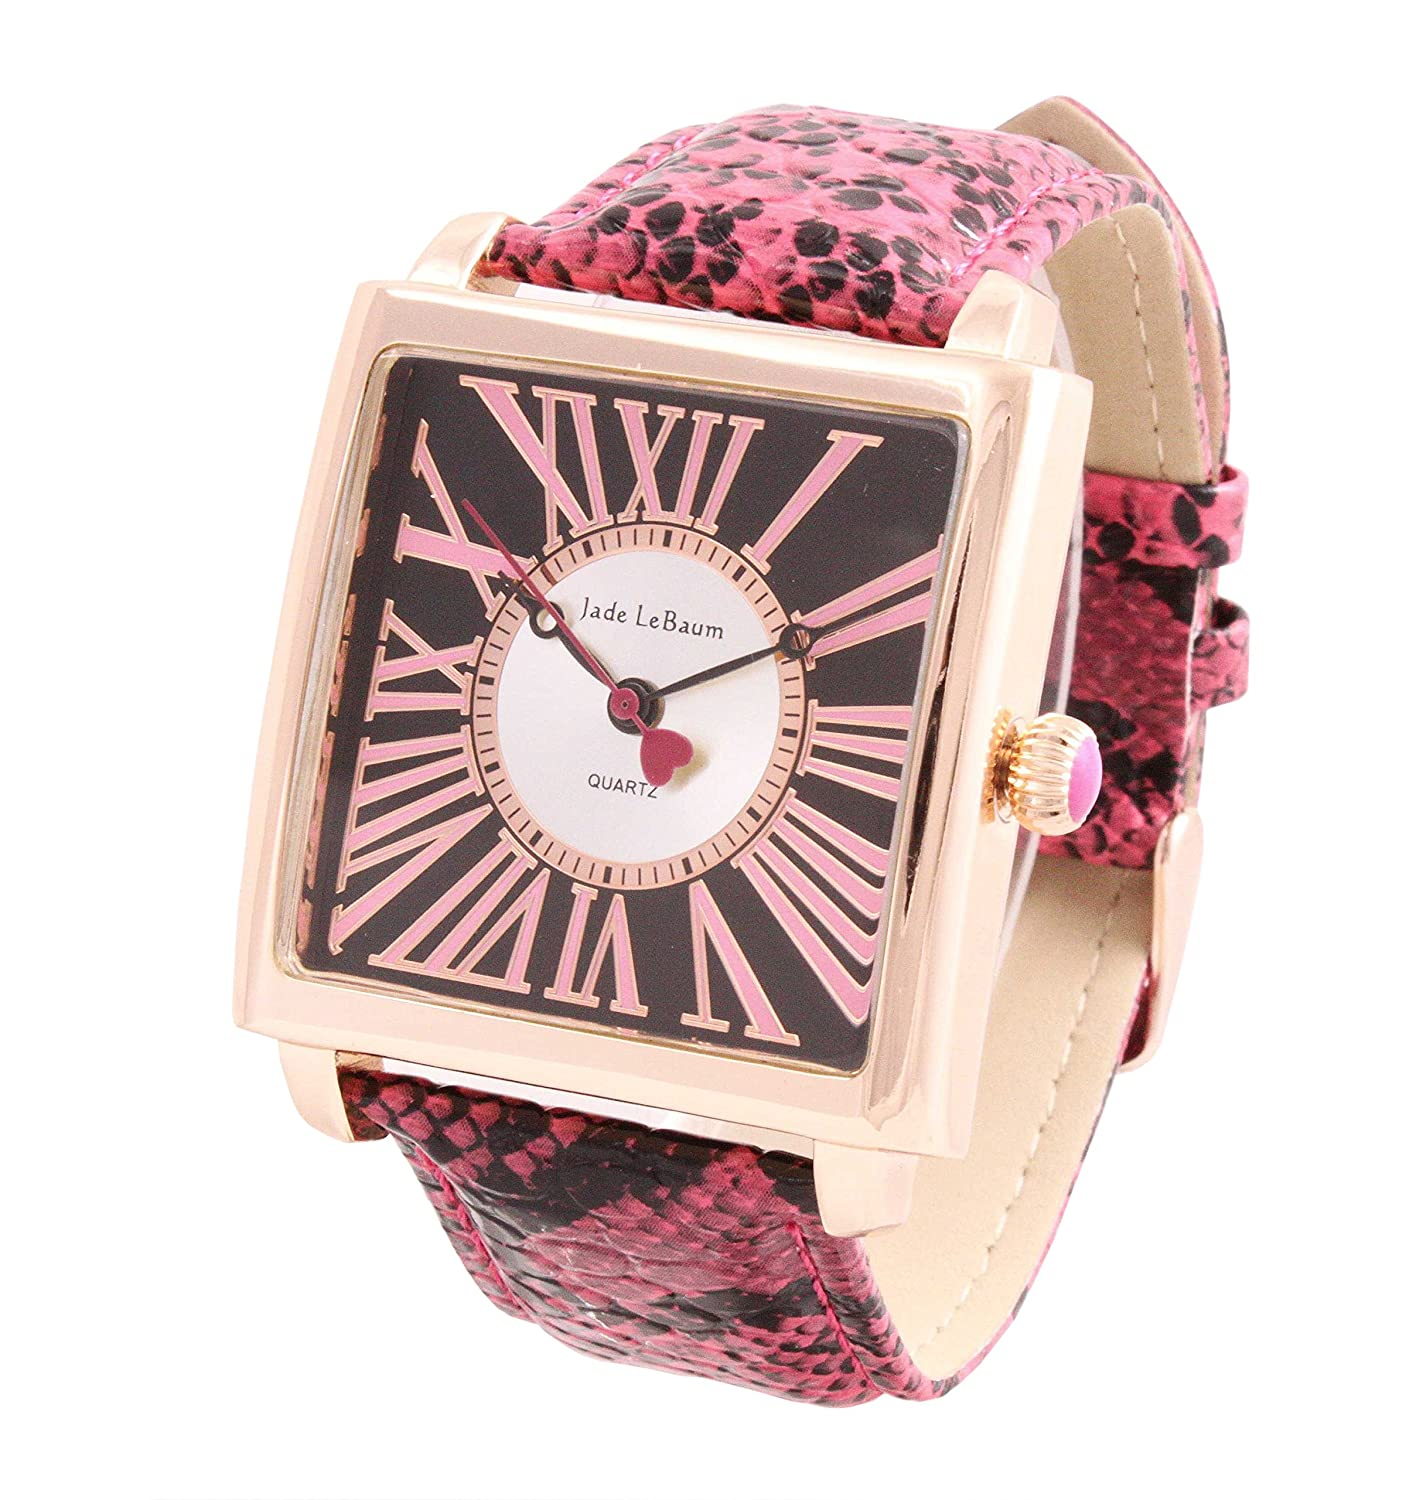 Amazon.com: Womens Watch Square Face Fuchsia Leather Strap Roman Numerals Reloj de Damas Jade LeBaum - JB202873G: Jade LeBaum: Watches